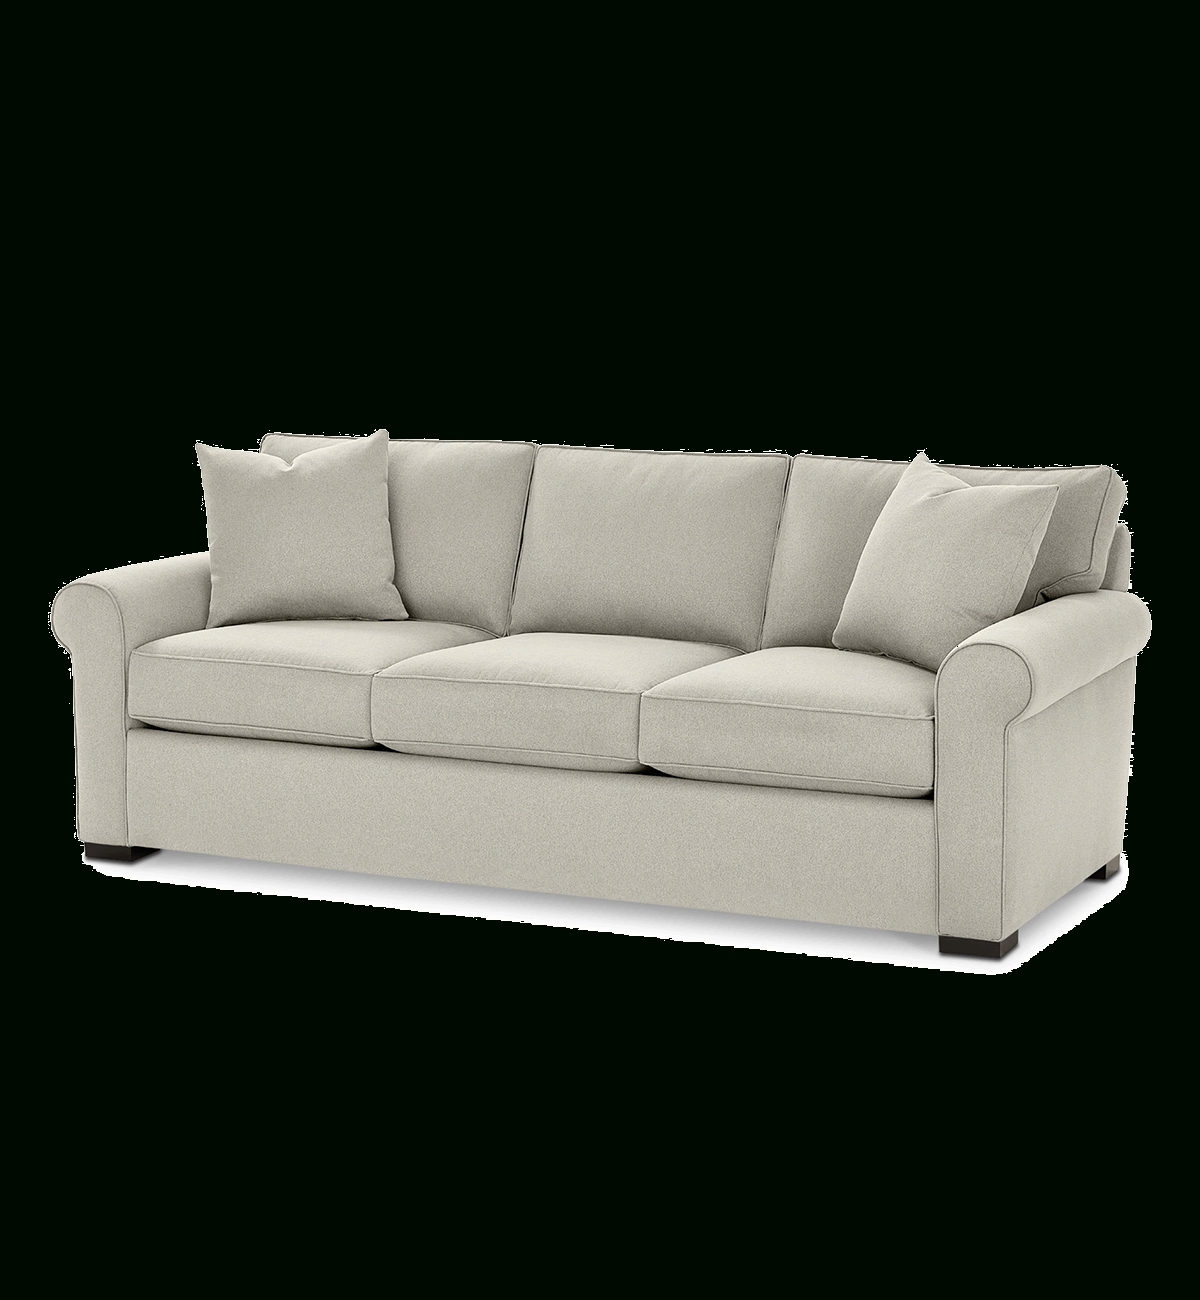 Favorite Macys Leather Sofas Intended For Leather Couches And Sofas – Macy's (View 5 of 15)